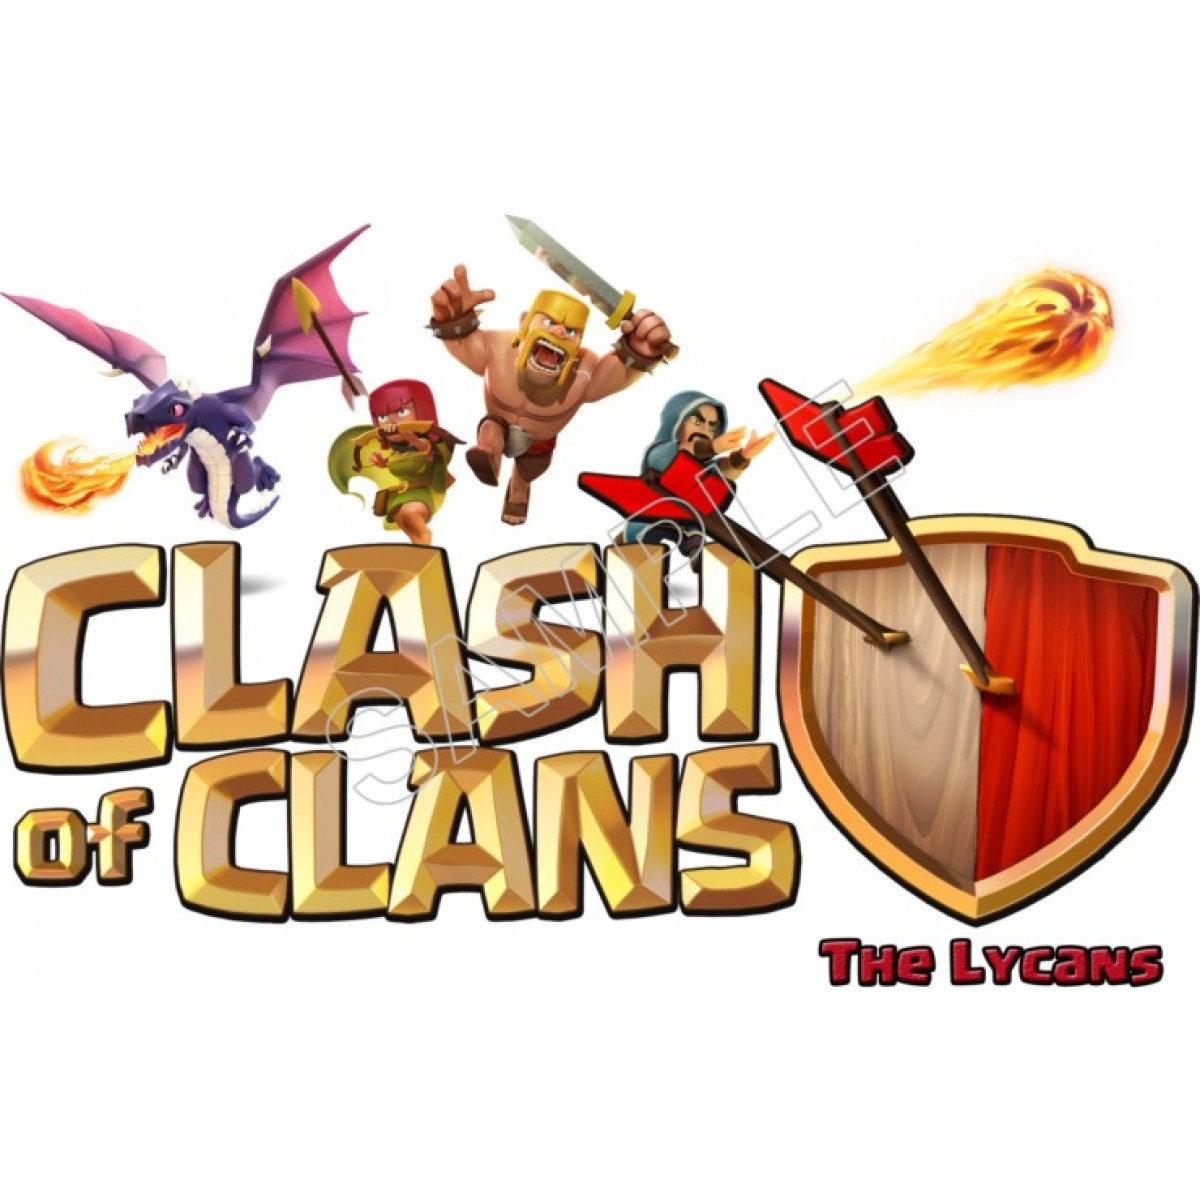 Clash of clans Logos.